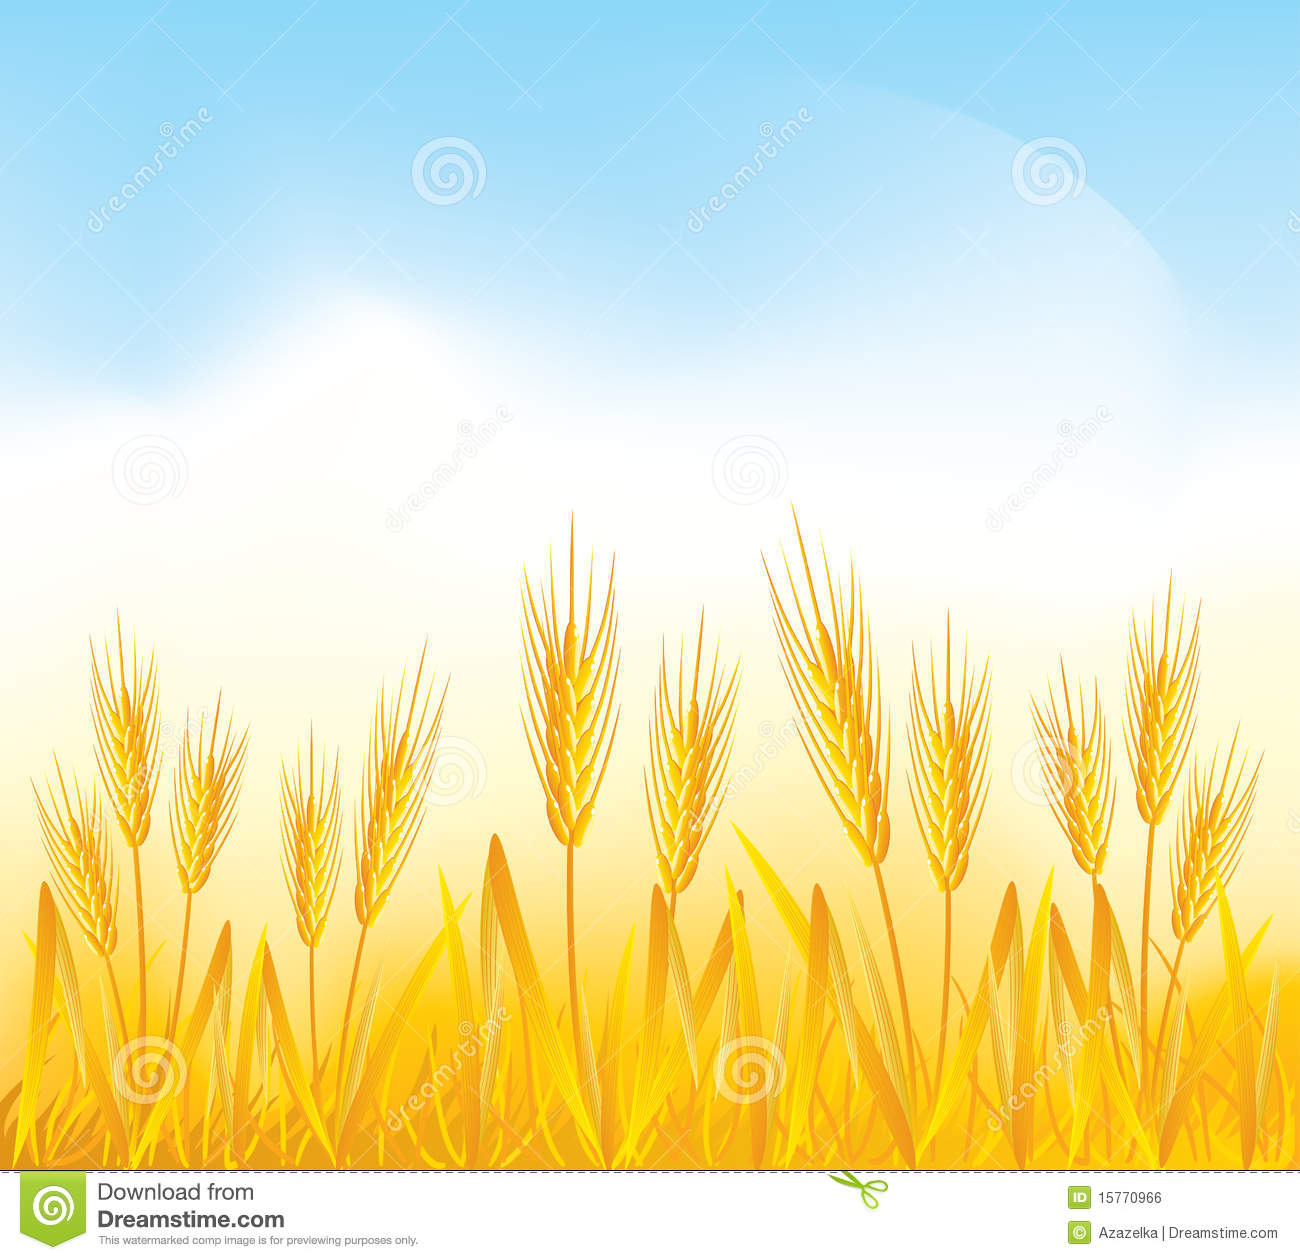 Clipart wheat field.